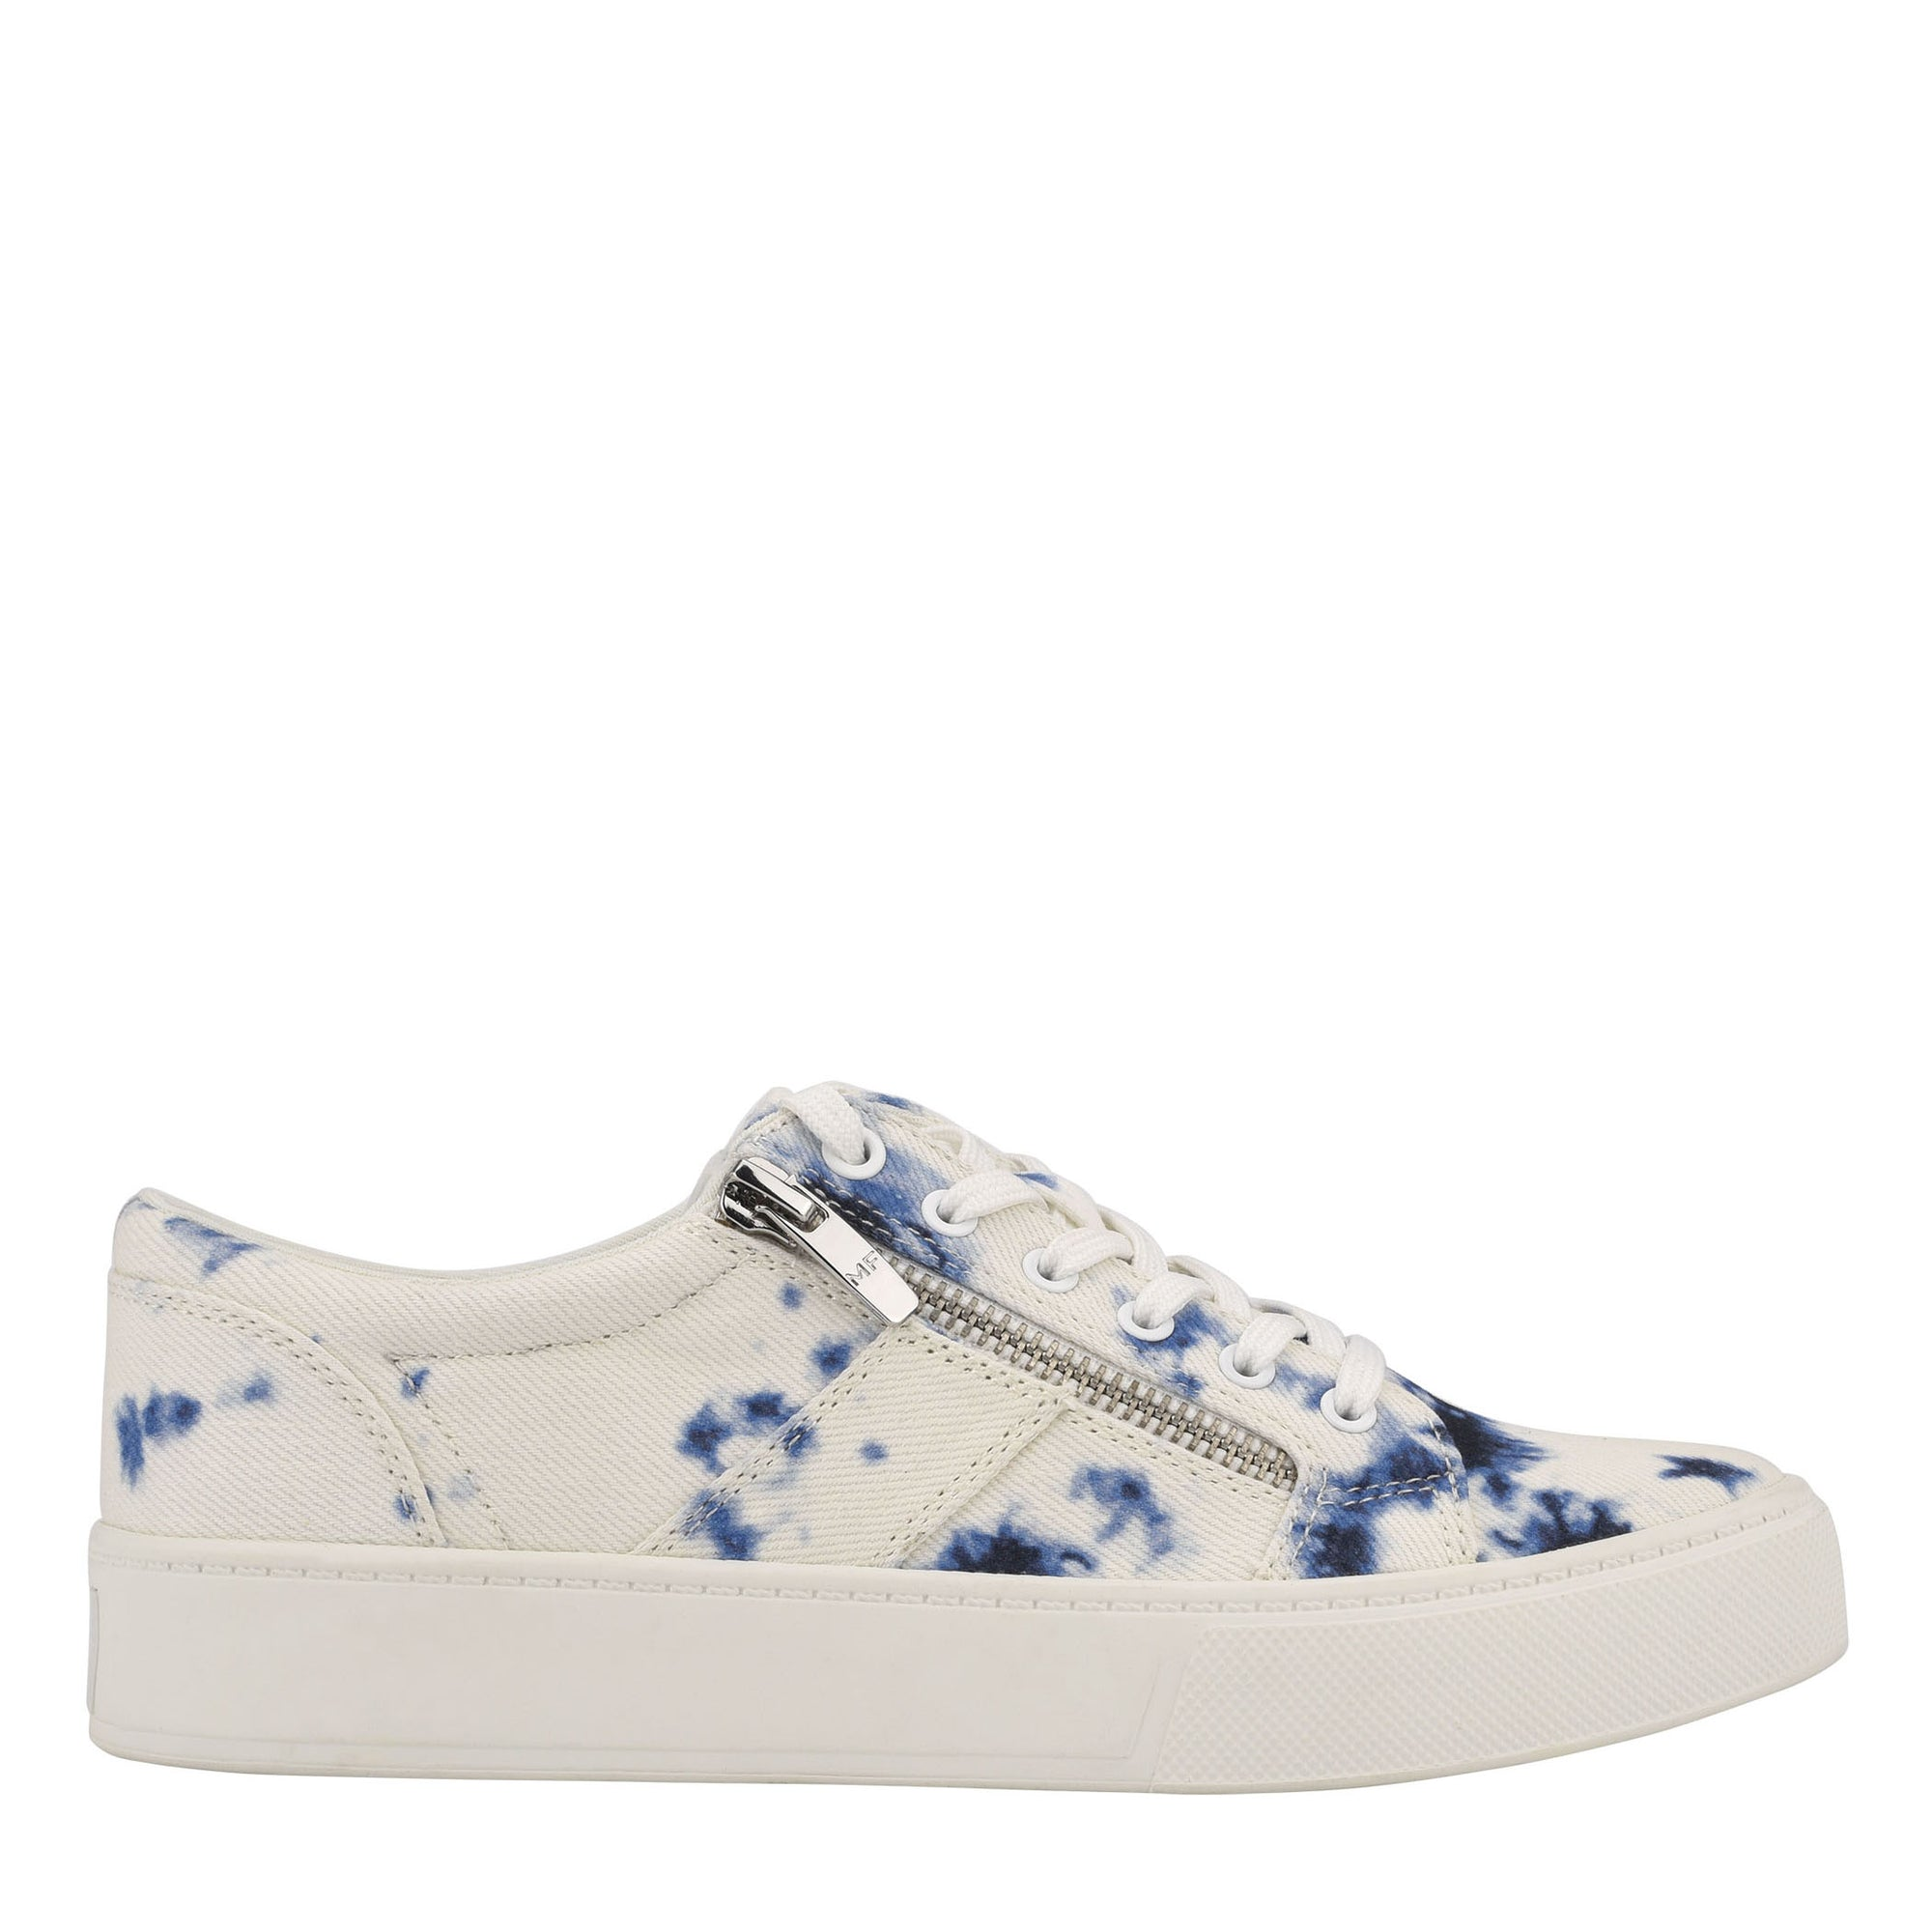 savira-sneaker-in-blue-white-tie-dye